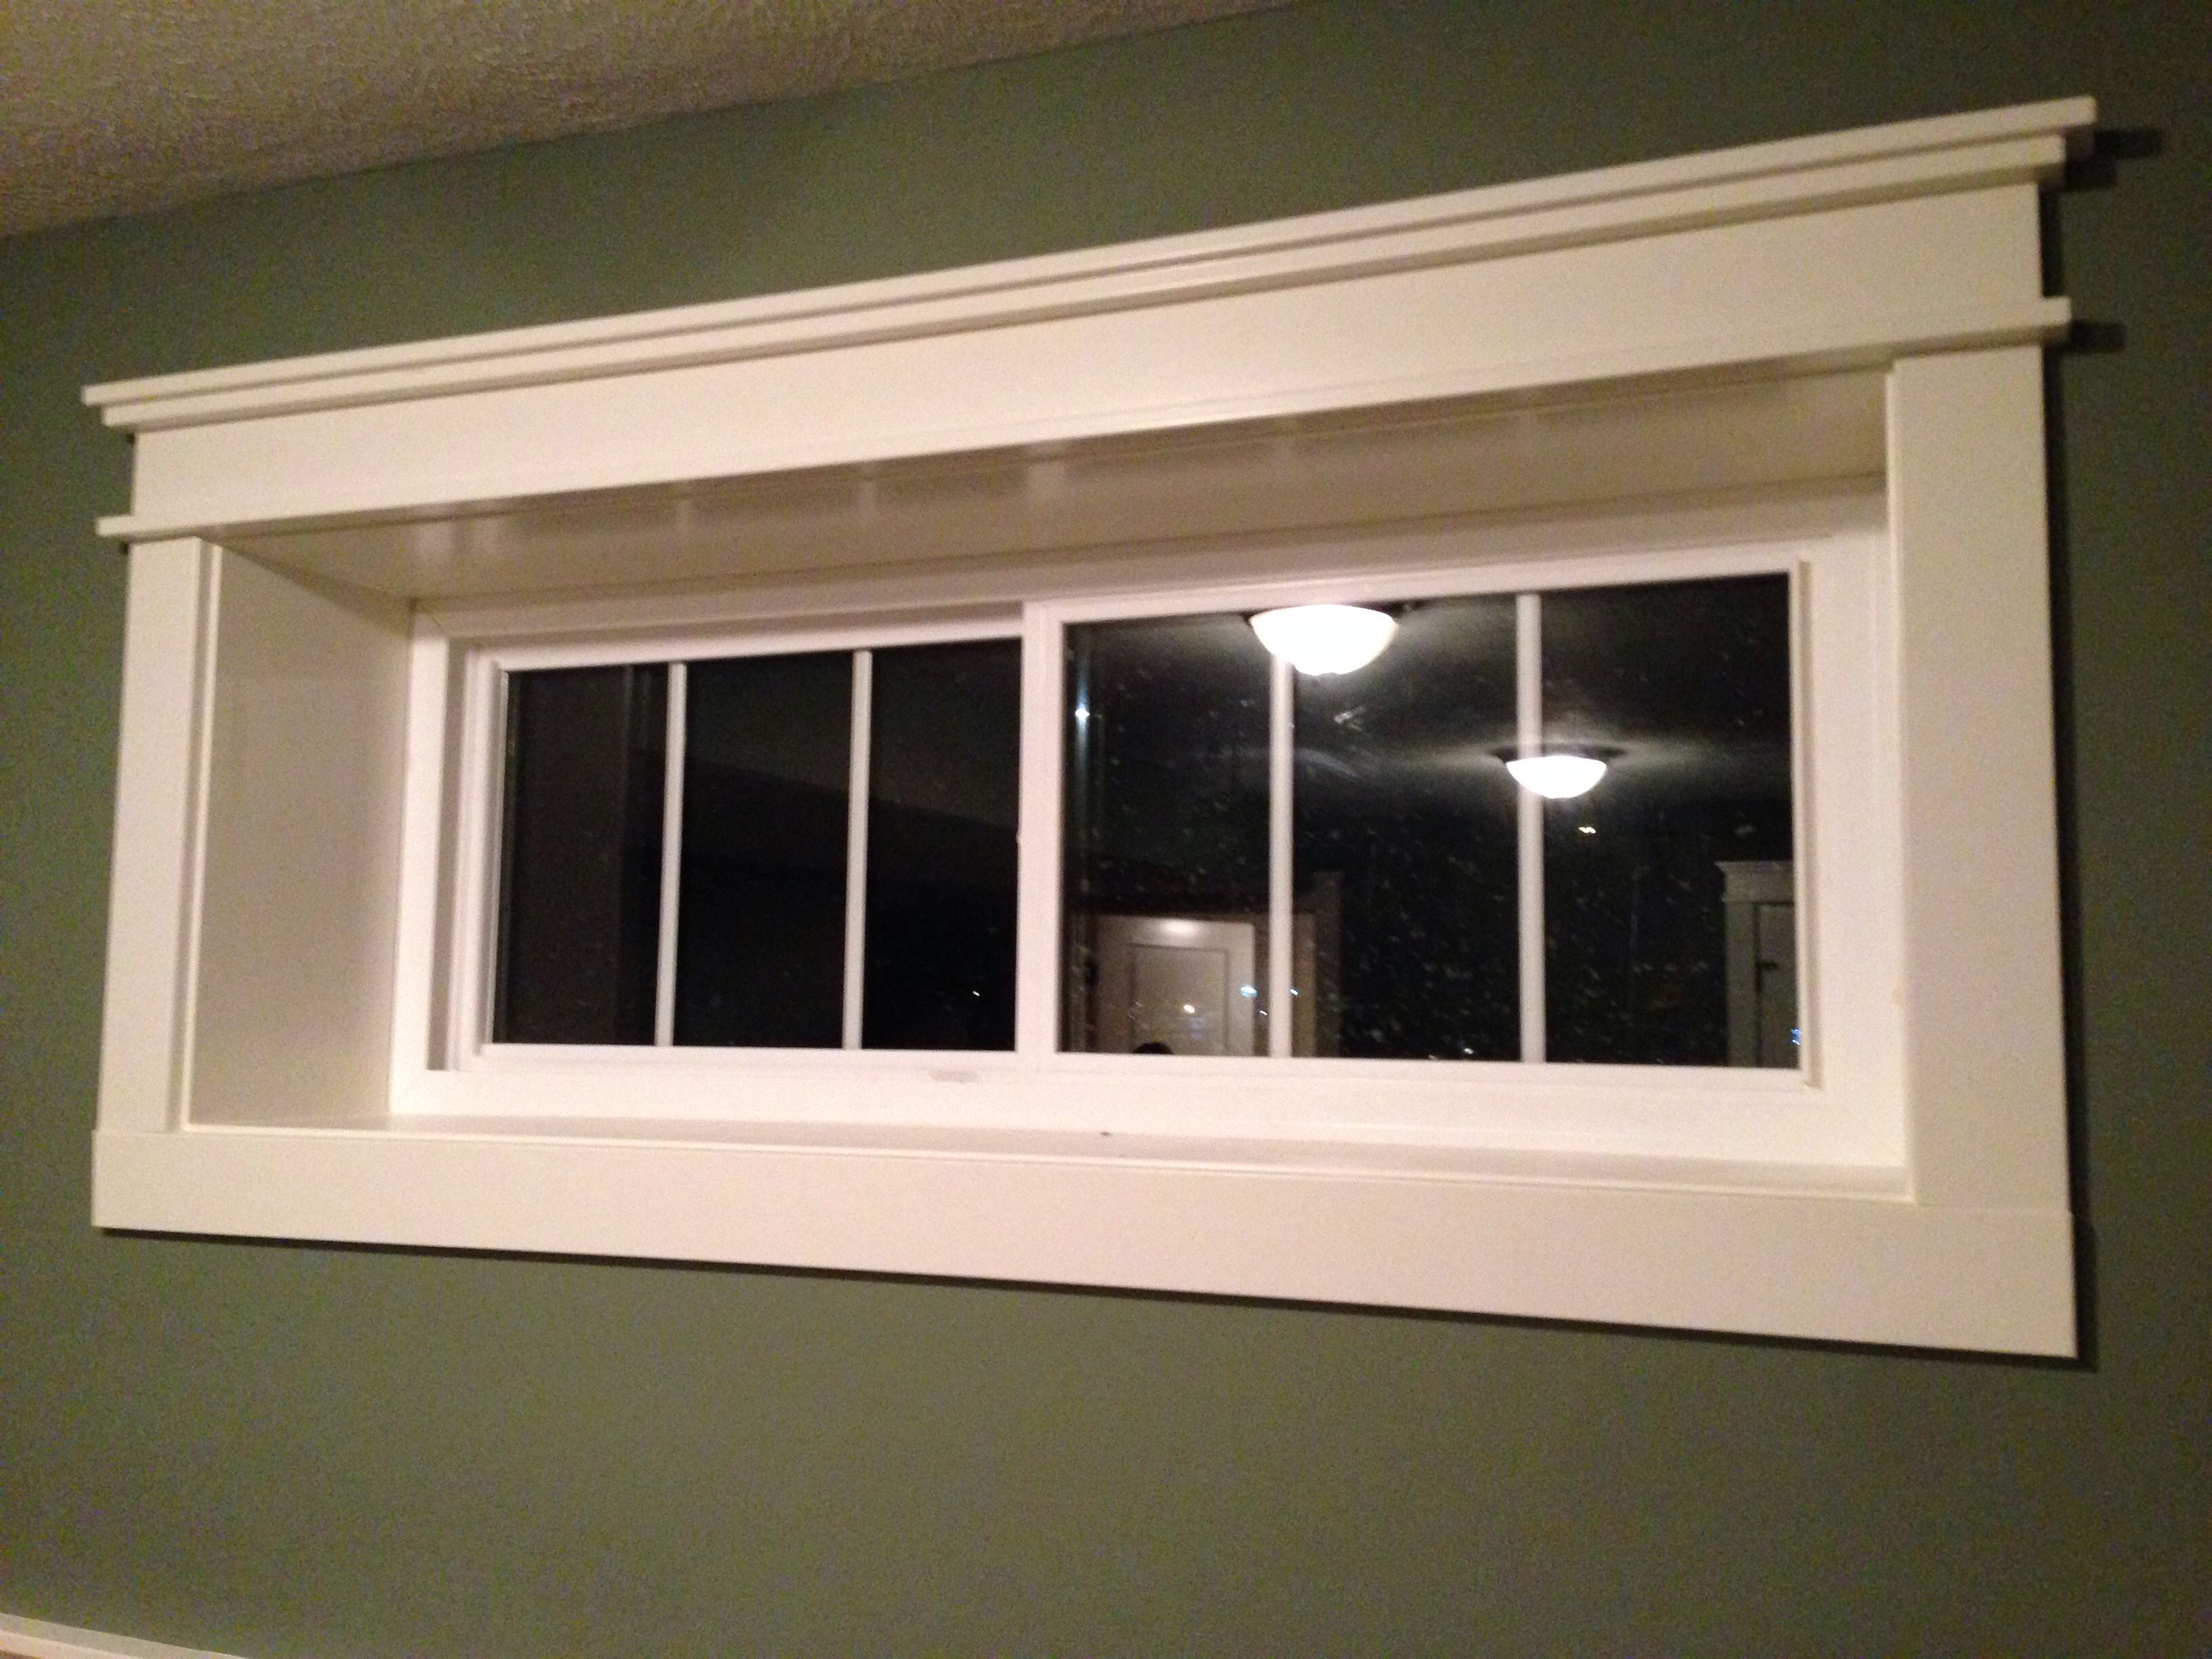 Quality window trim brouwers r building in 2019 - Craftsman style window trim interior ...